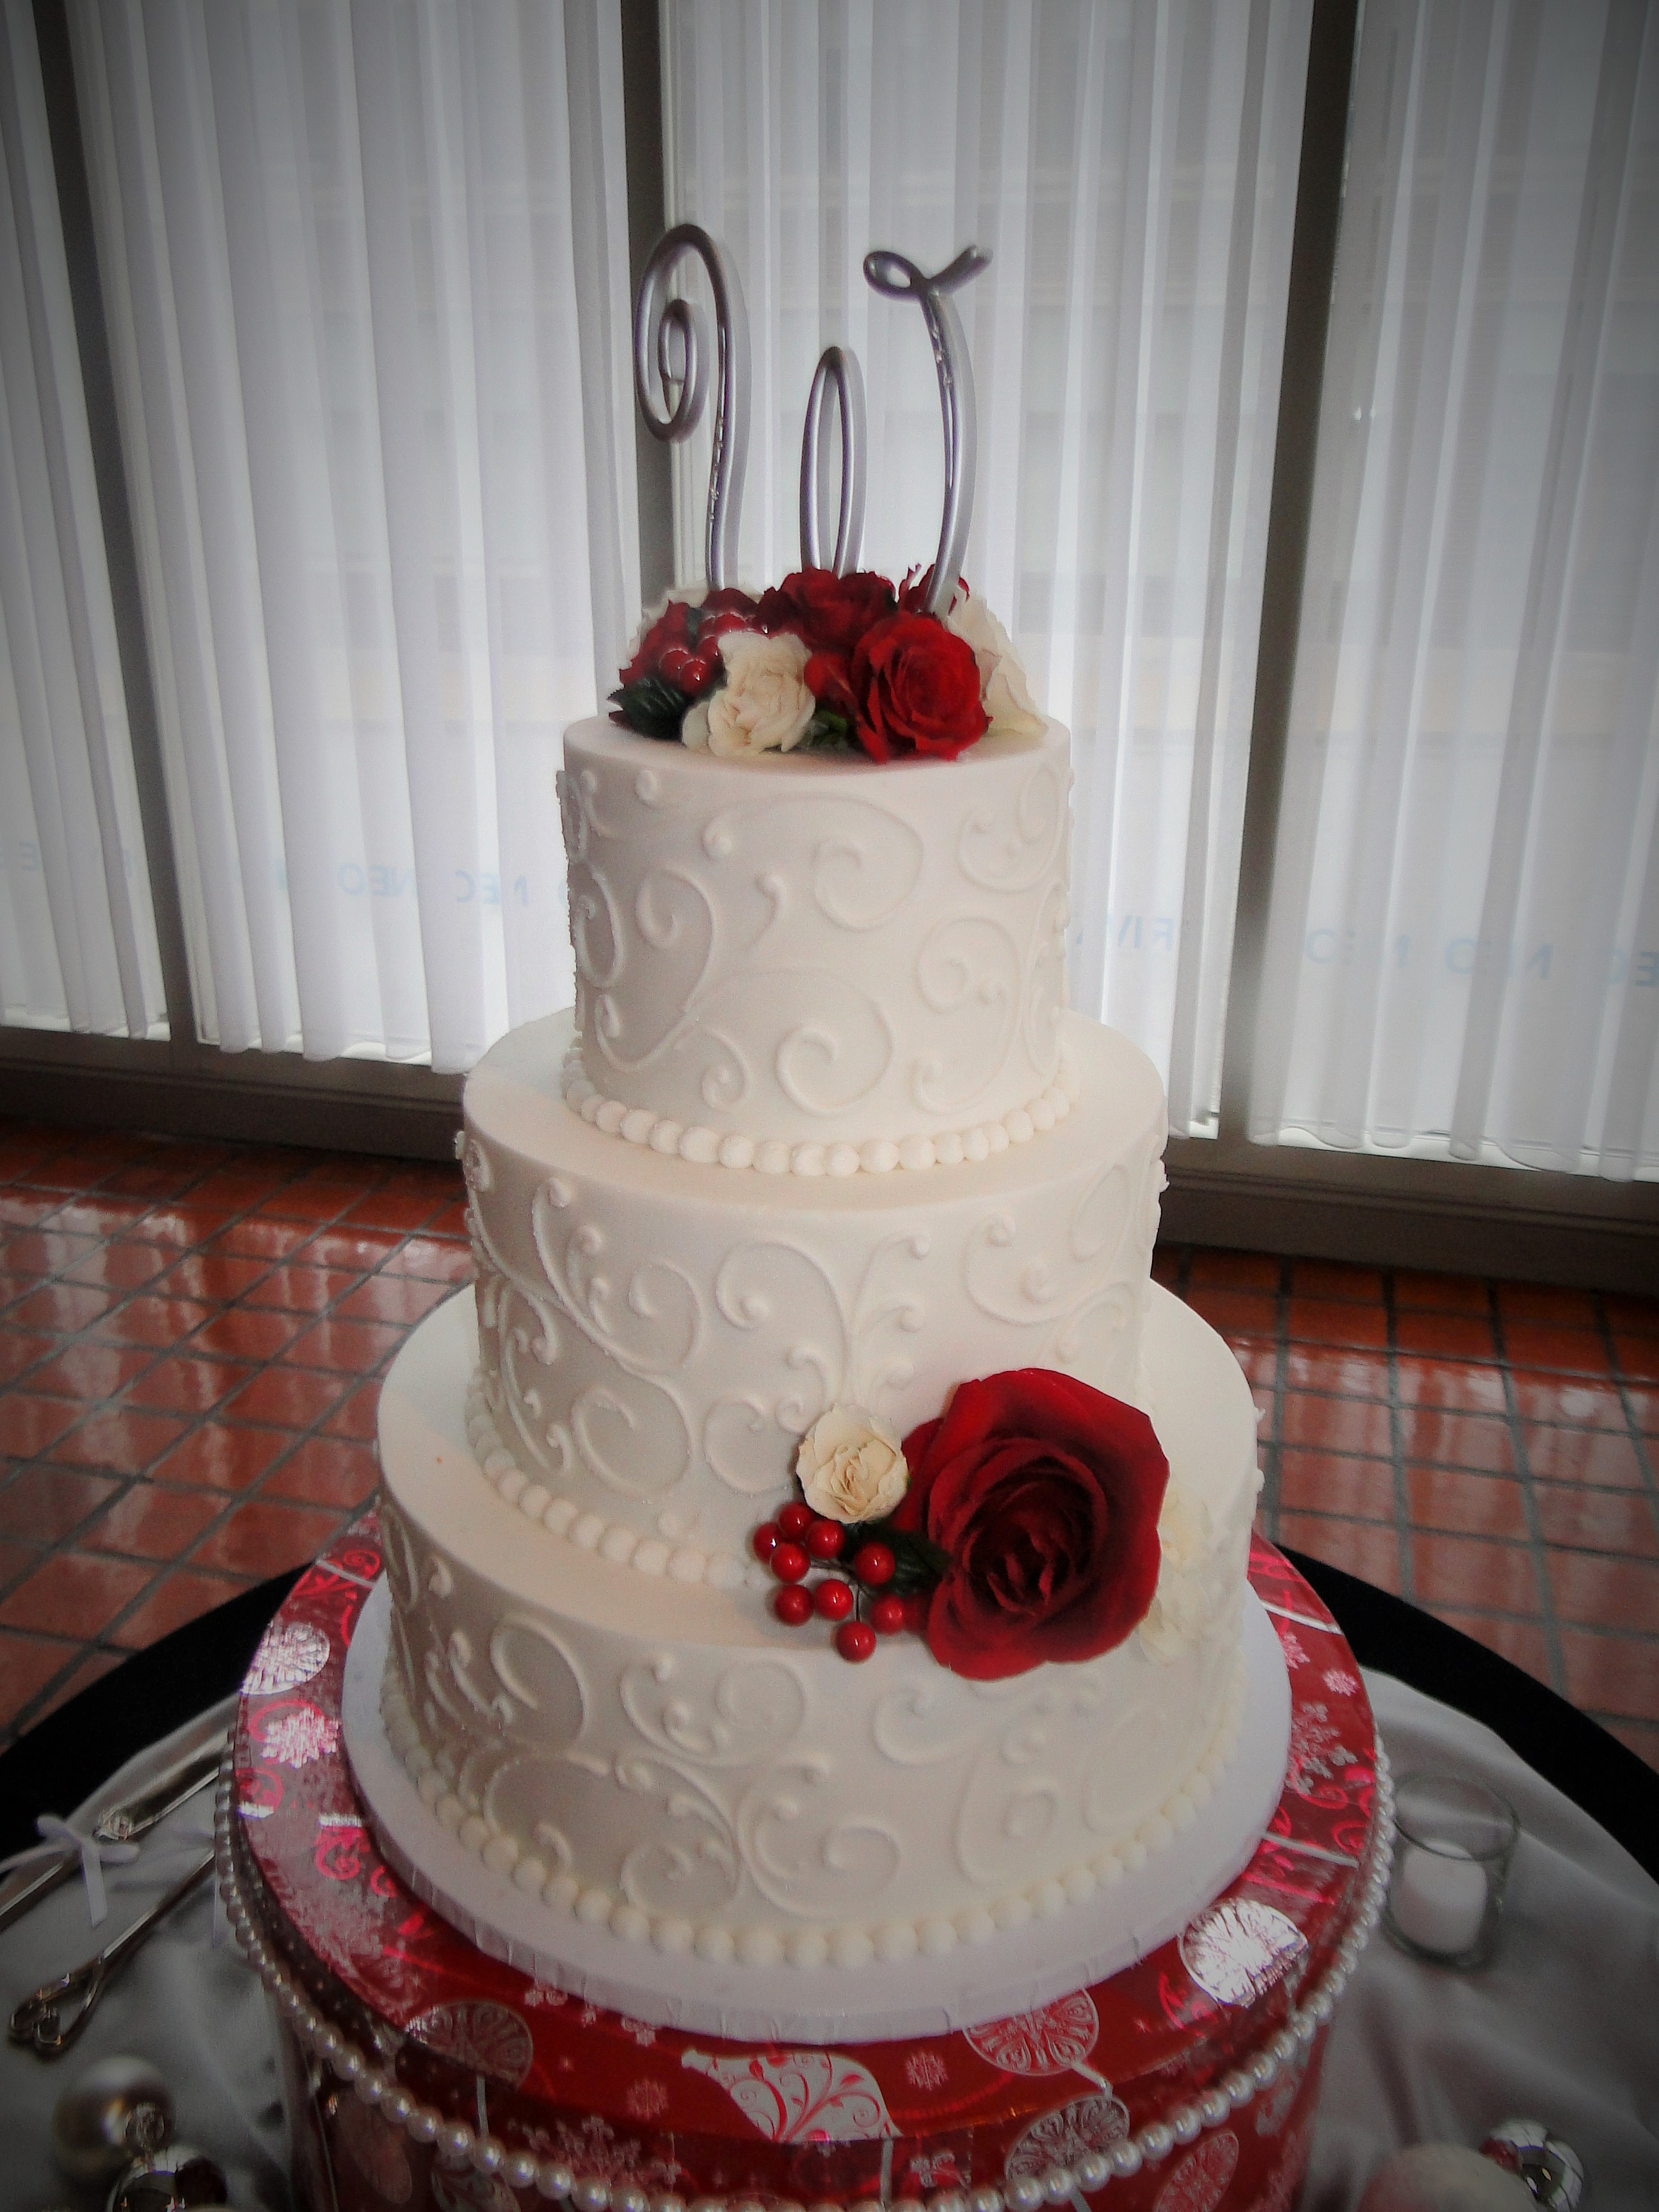 White Cake with Red flowers